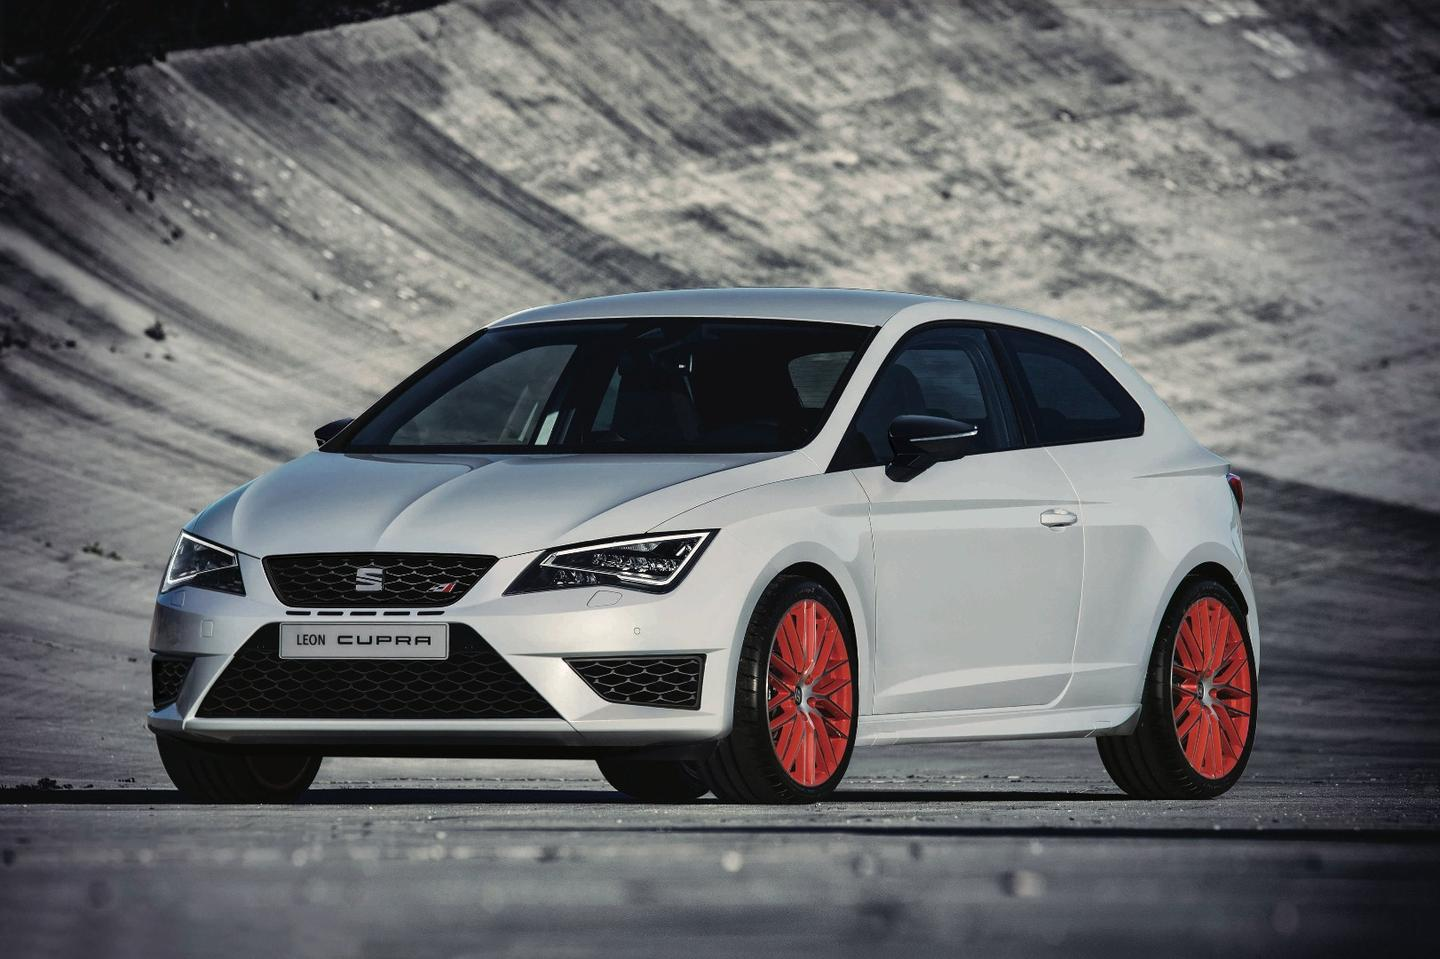 The Seat Leon Cupra SUB8 package comes in fifth on the list